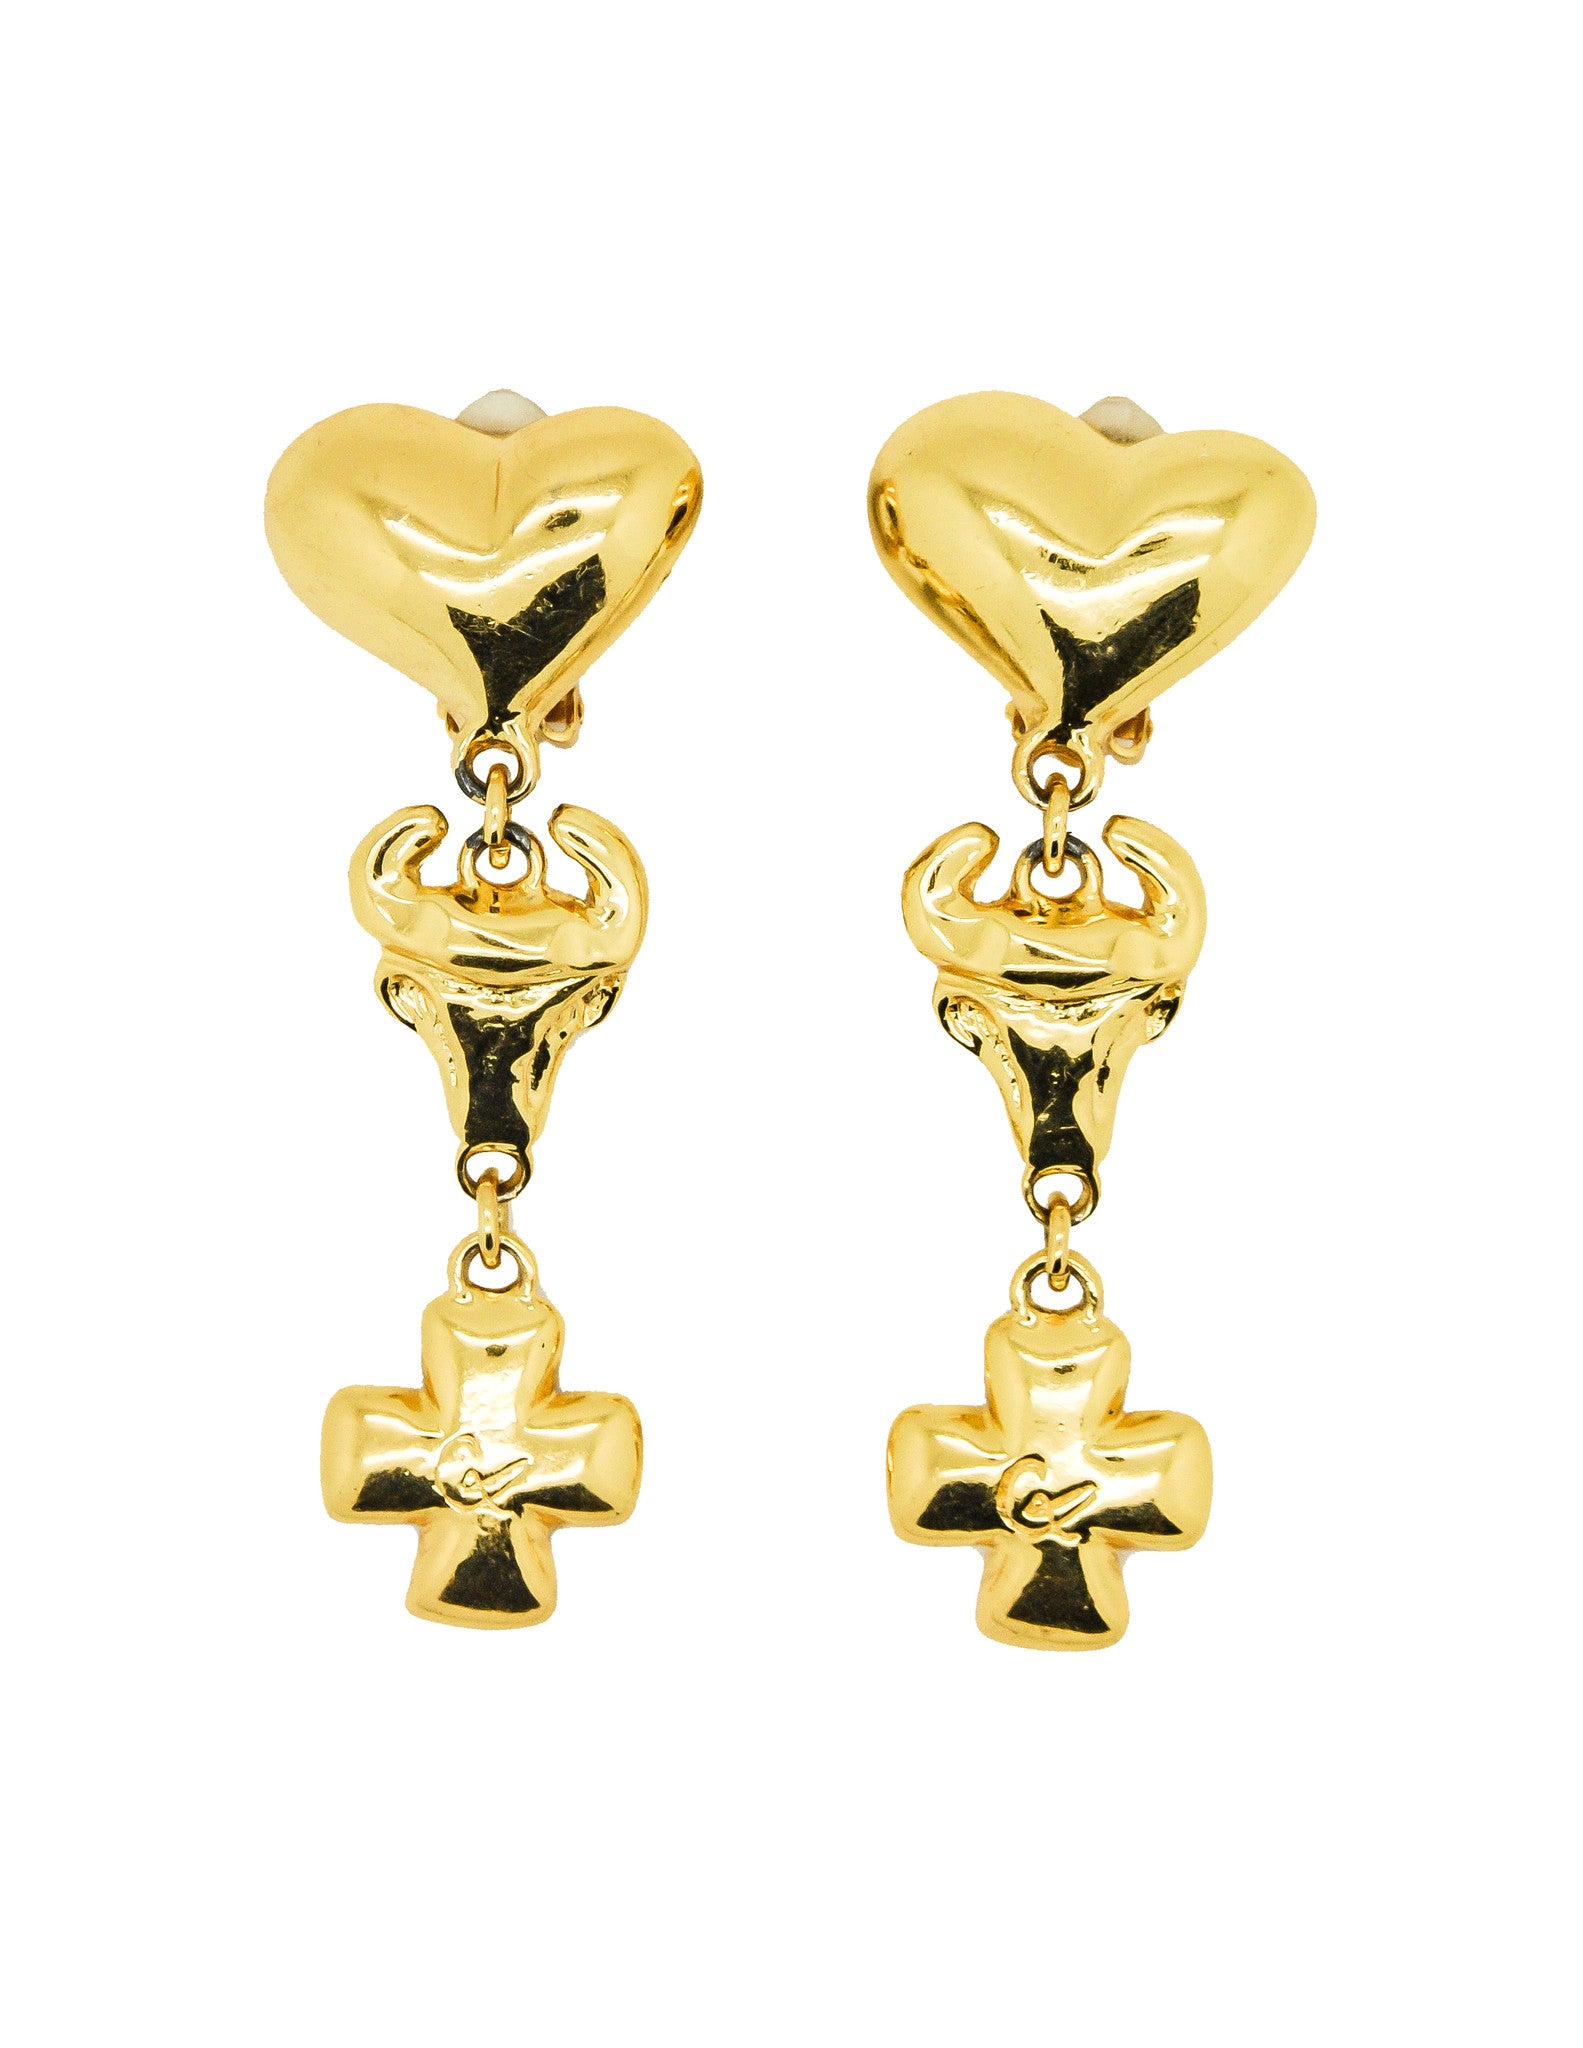 Christian Lacroix Vintage Heart Bull Cross Earrings - Amarcord Vintage Fashion  - 1